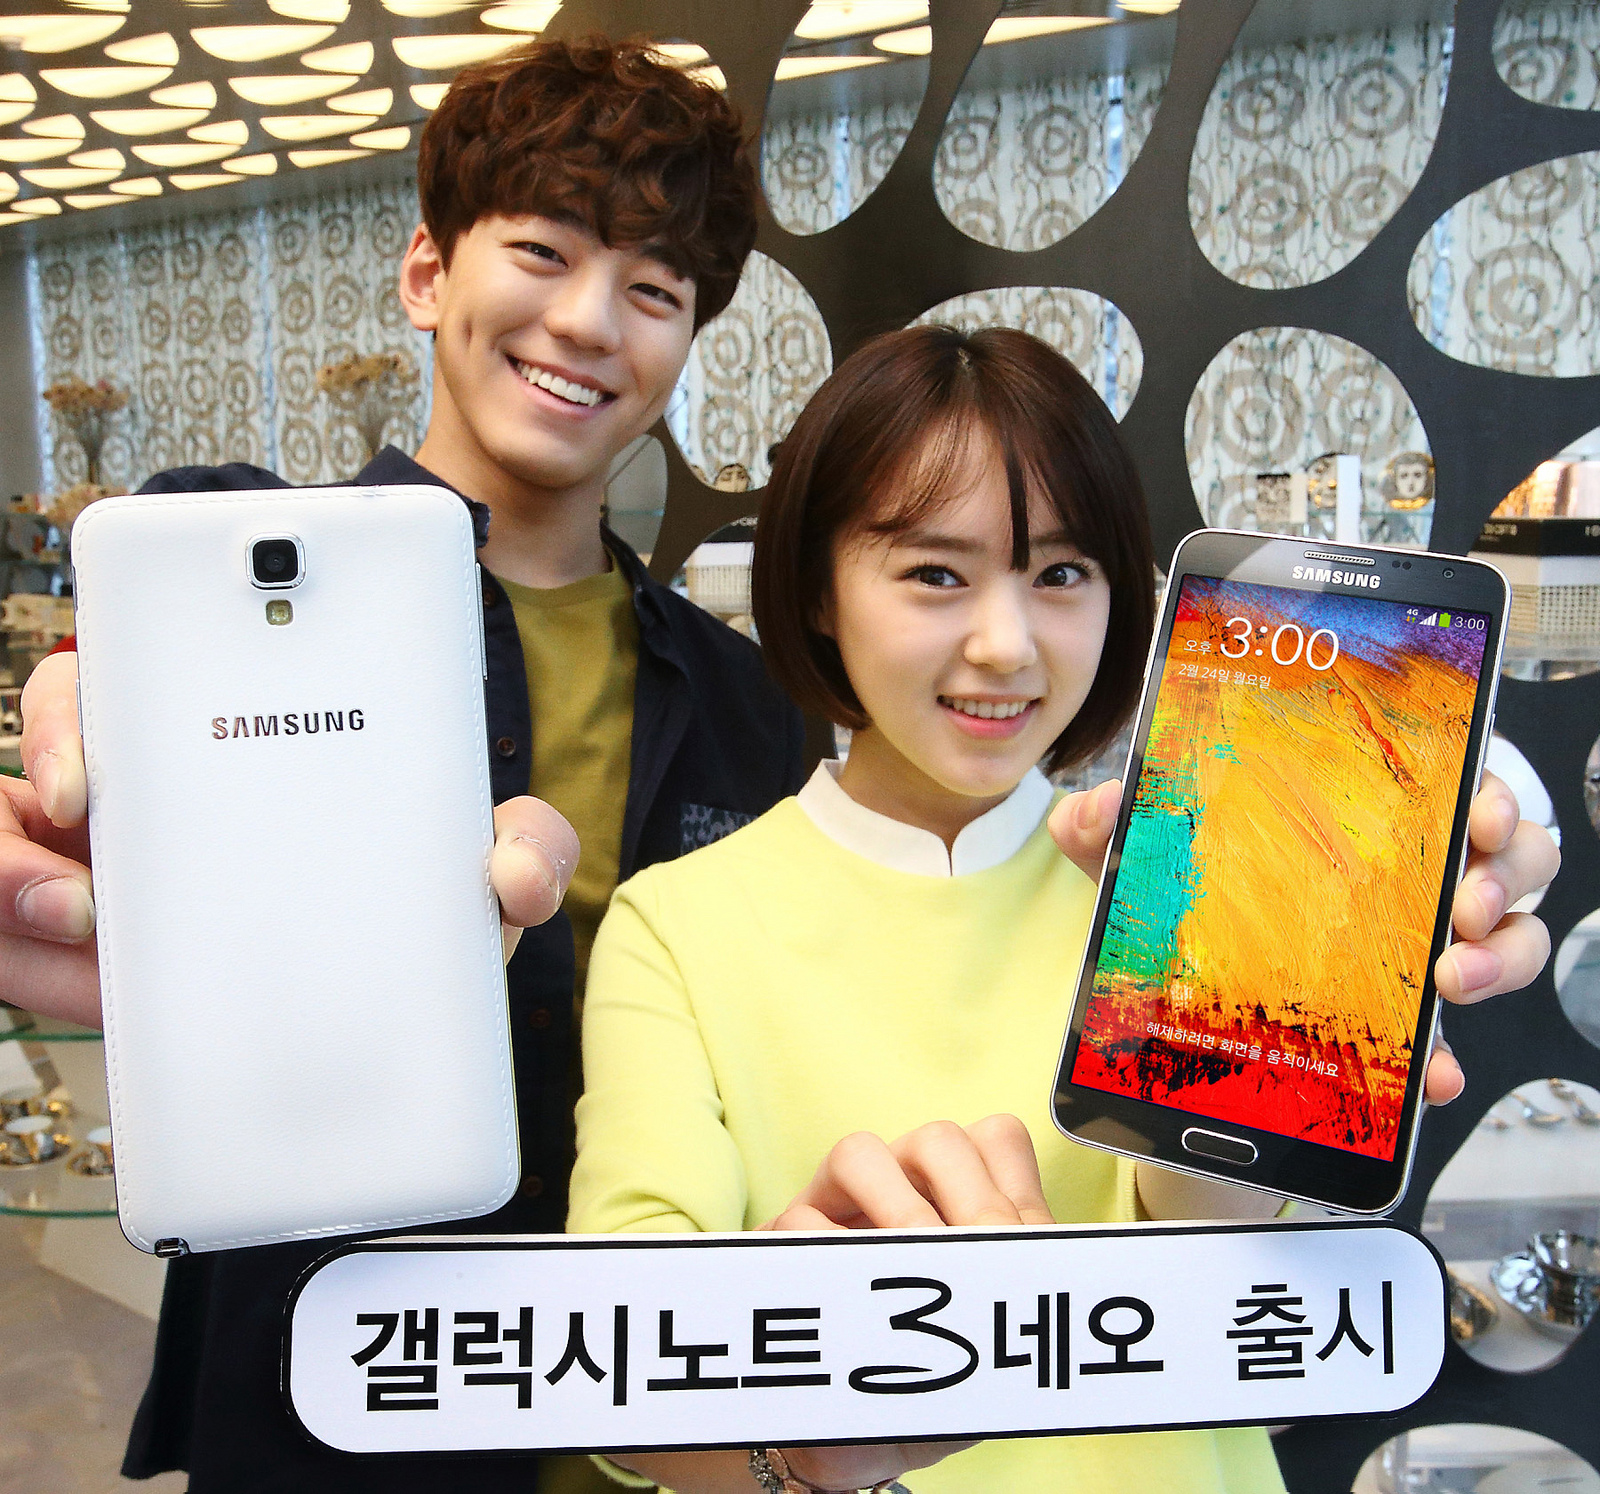 Samsung-launches-the-Galaxy-Note-3-Neo-in-South-Korea (3)